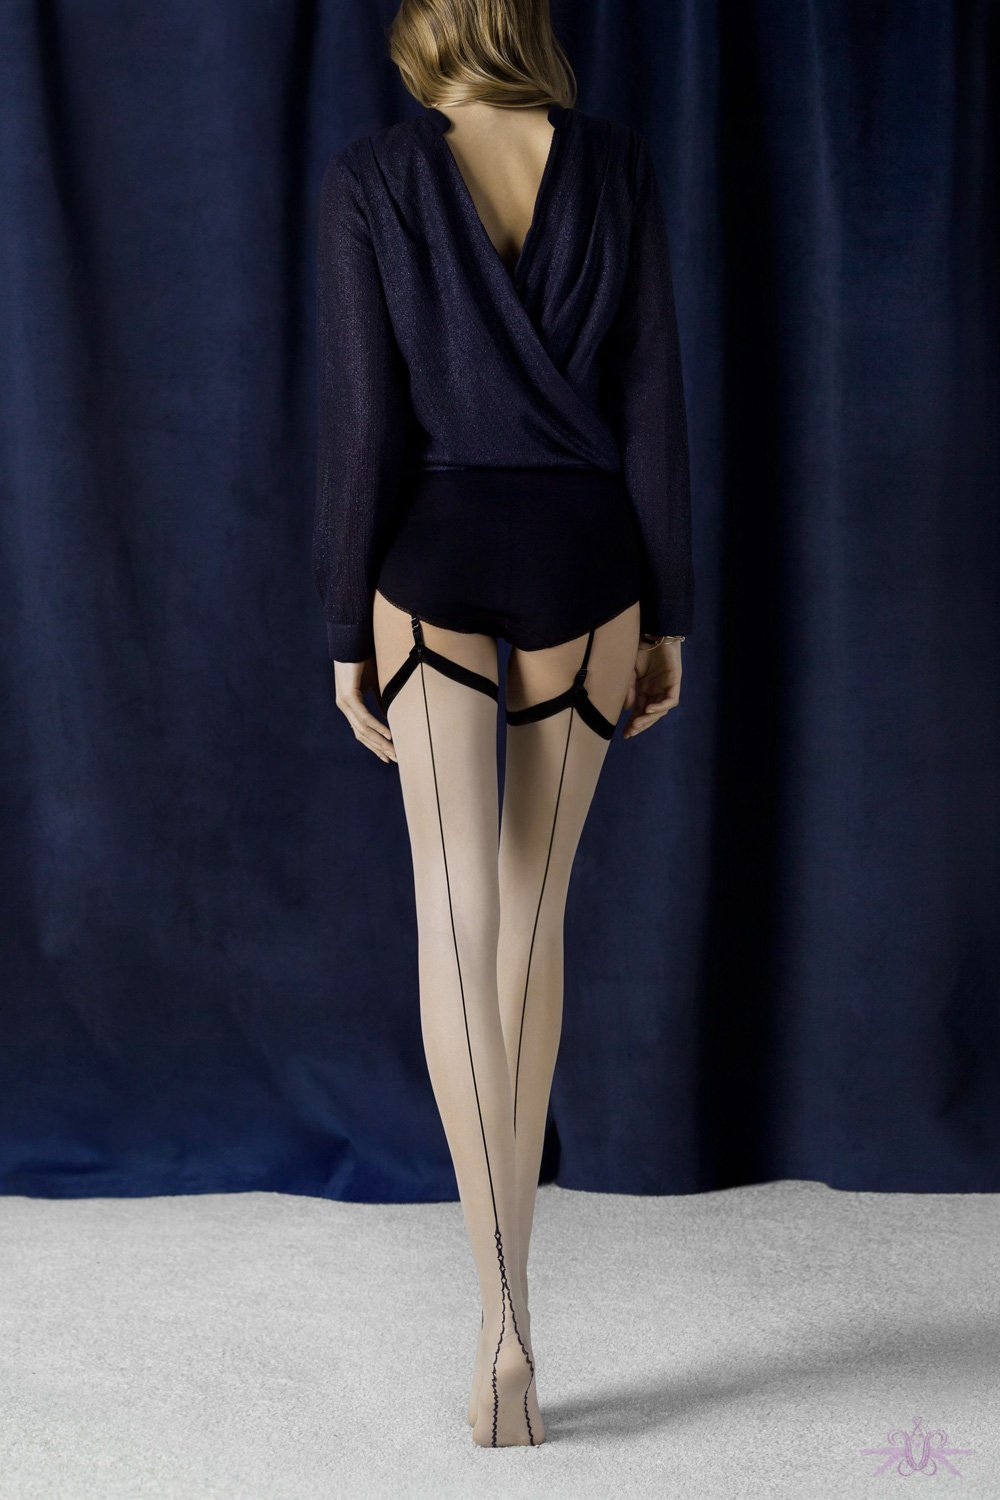 Fiore Provoke Seamed Stockings